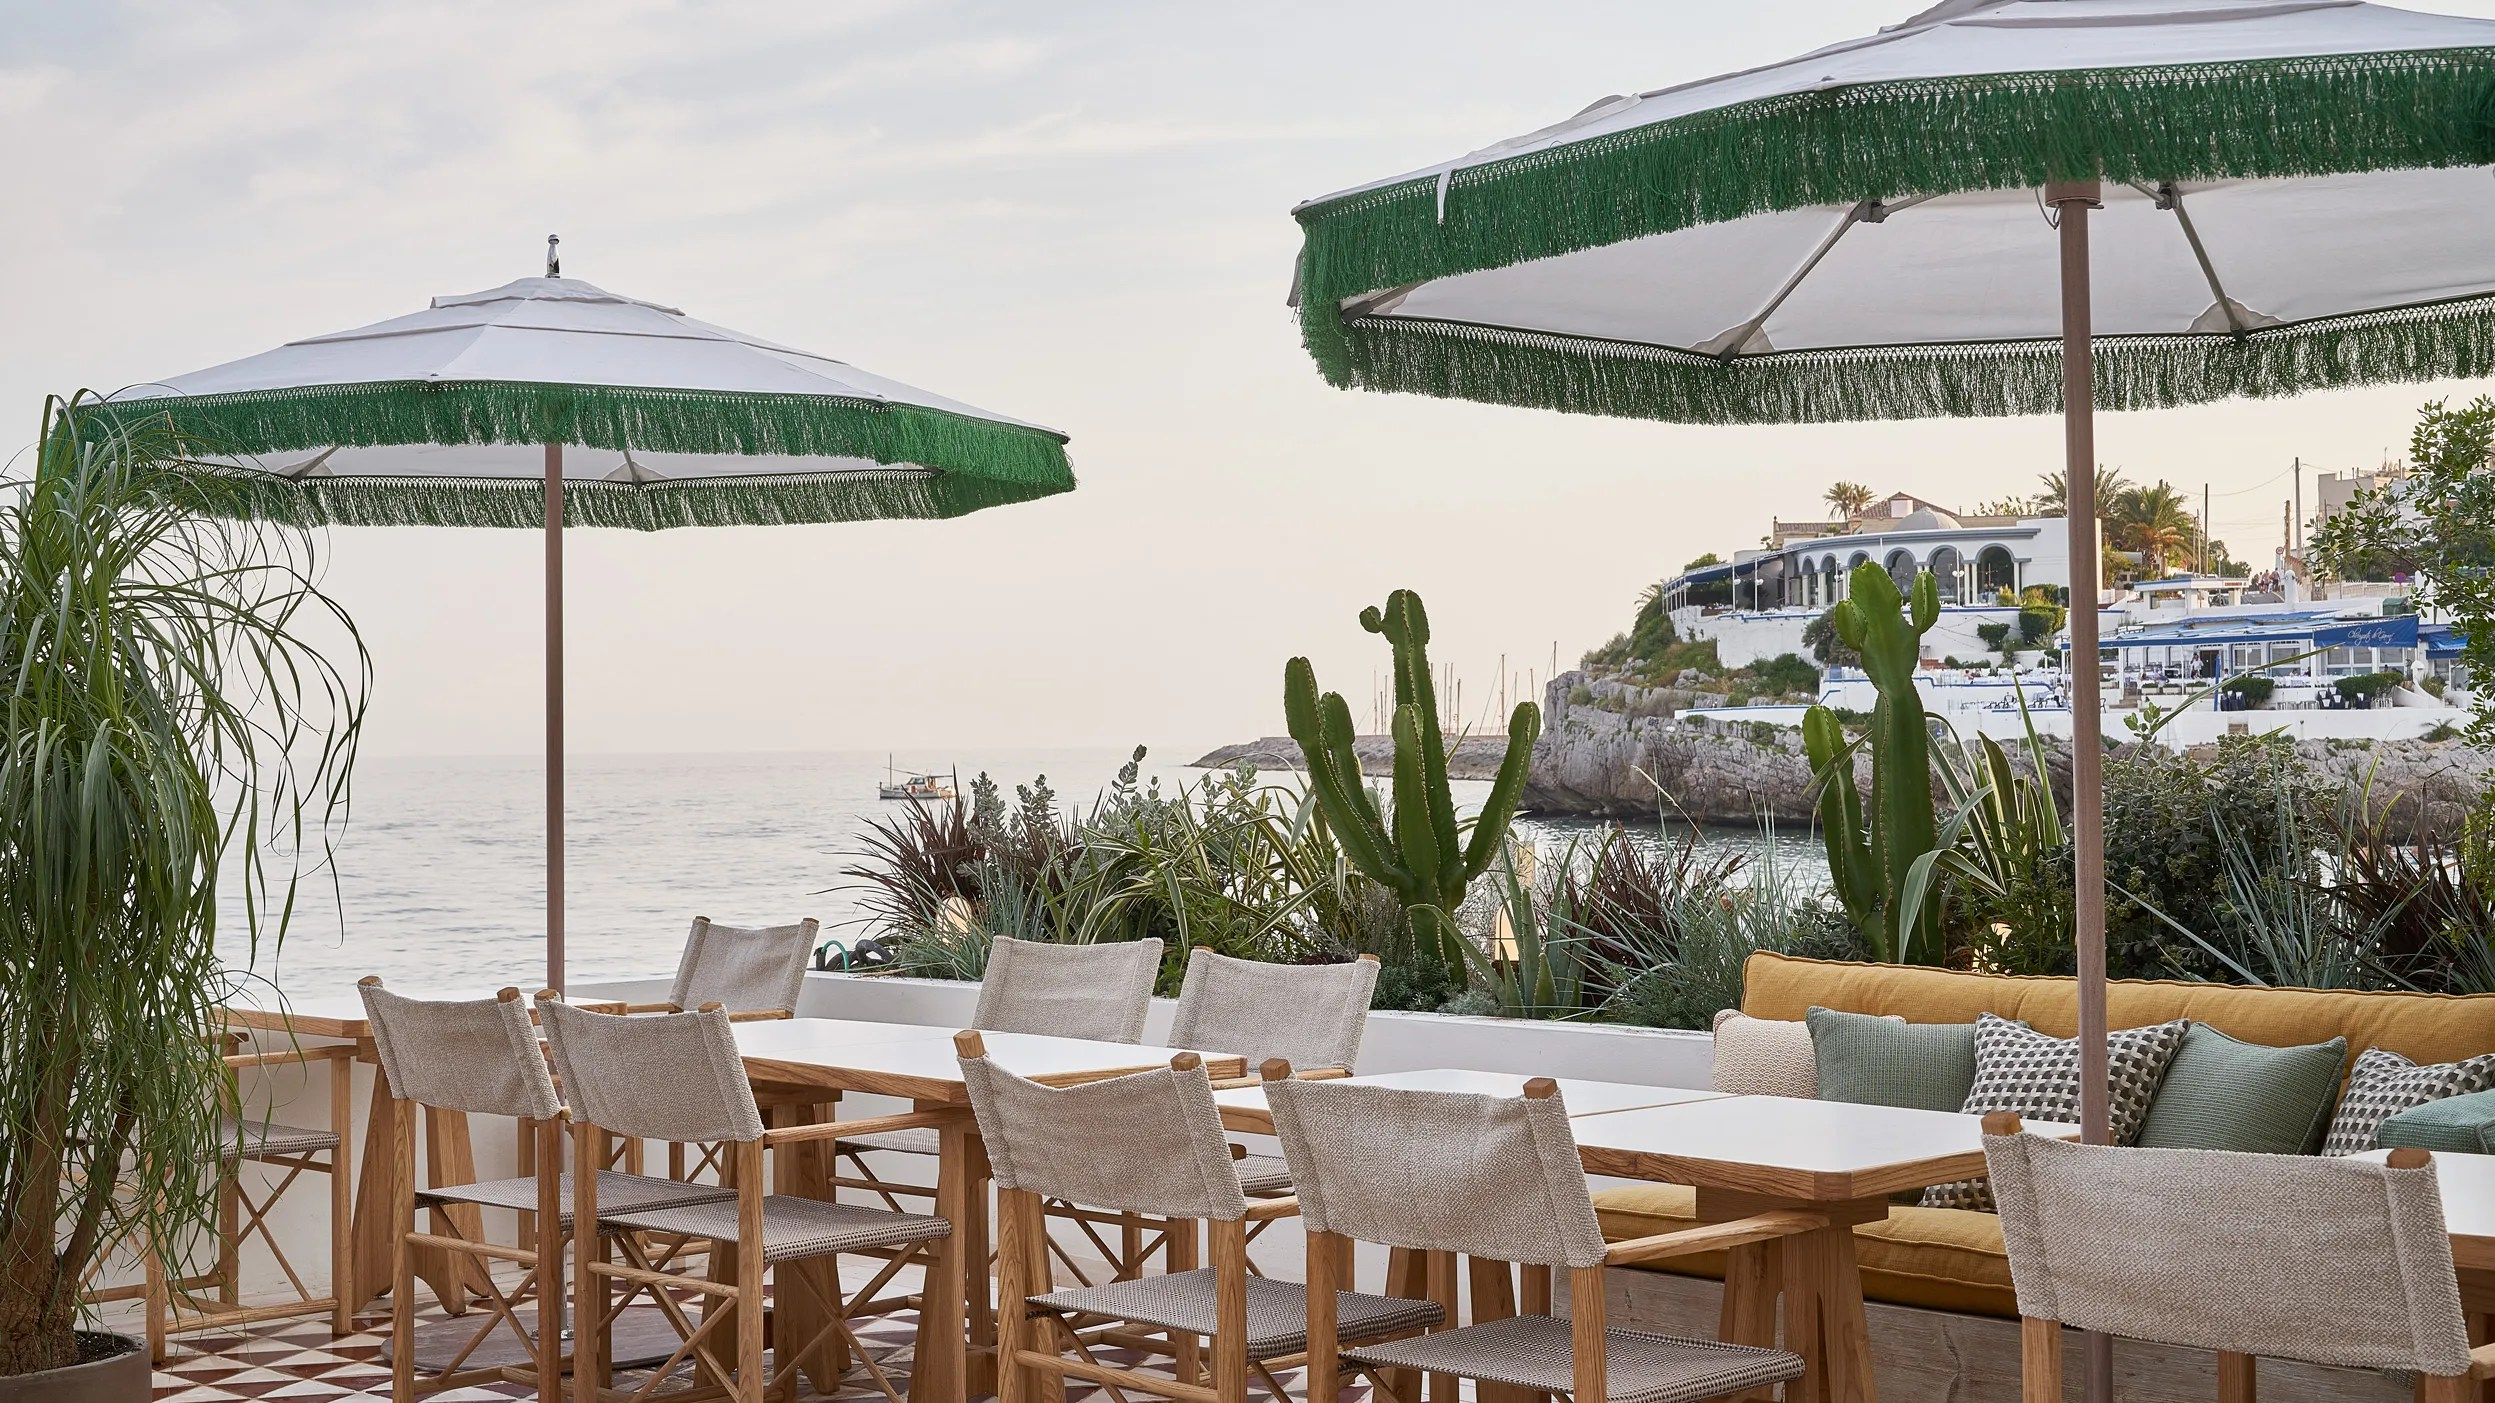 beach house pool, 2019 by george byrne. Little Beach House Barcelona Hotel Review Conde Nast Traveler